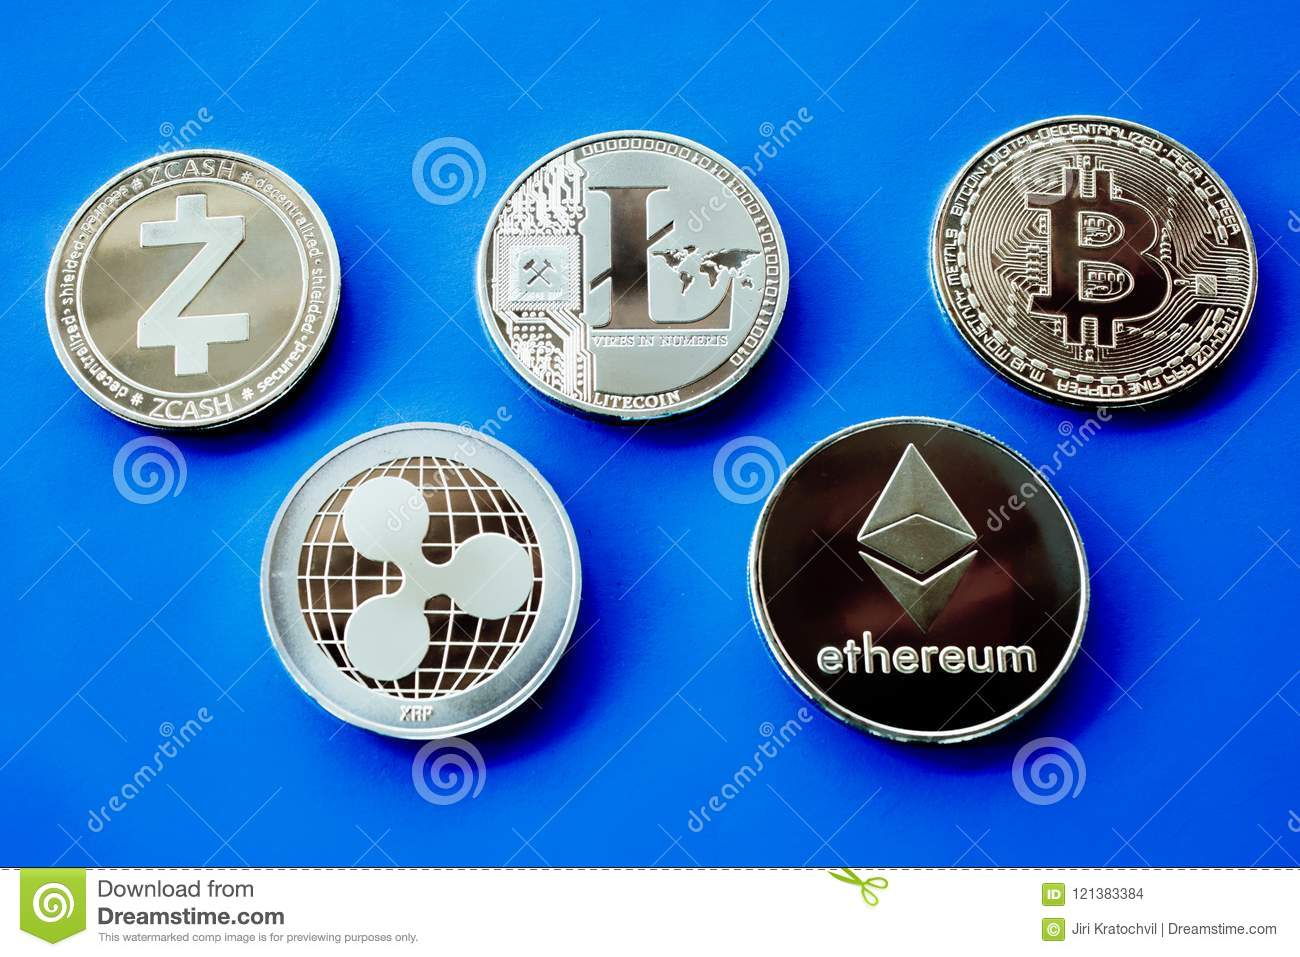 Mars coin crypto currency prices no lose acca free betting